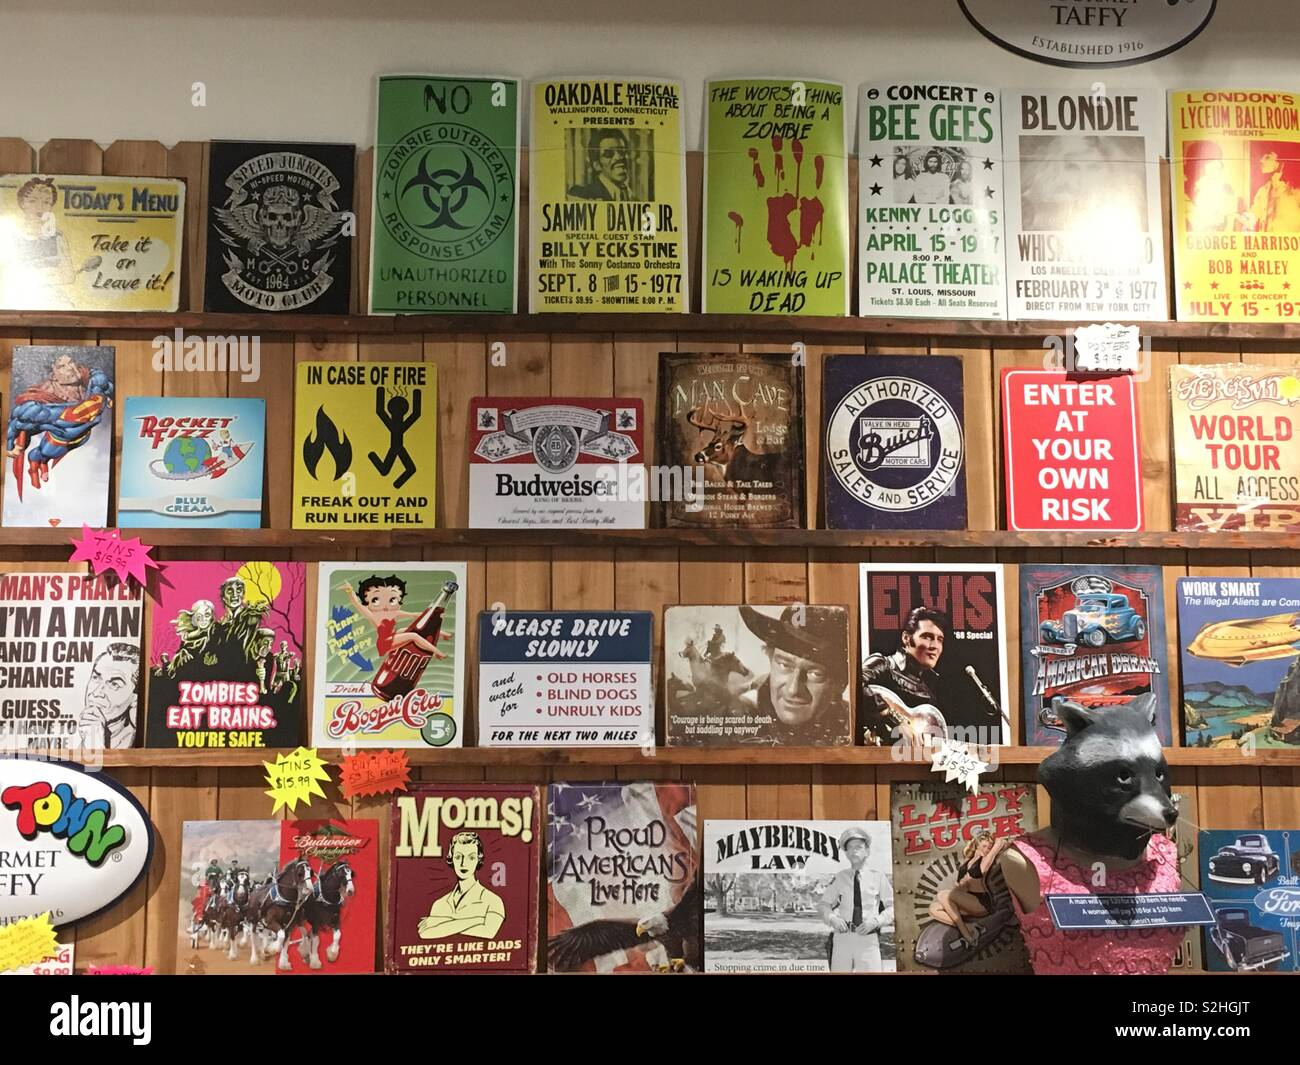 Display wall of classic vintage authentic tin foil advertisements with ad slogans.  Budweiser.  Betty Boop. Mayberry Law. - Stock Image